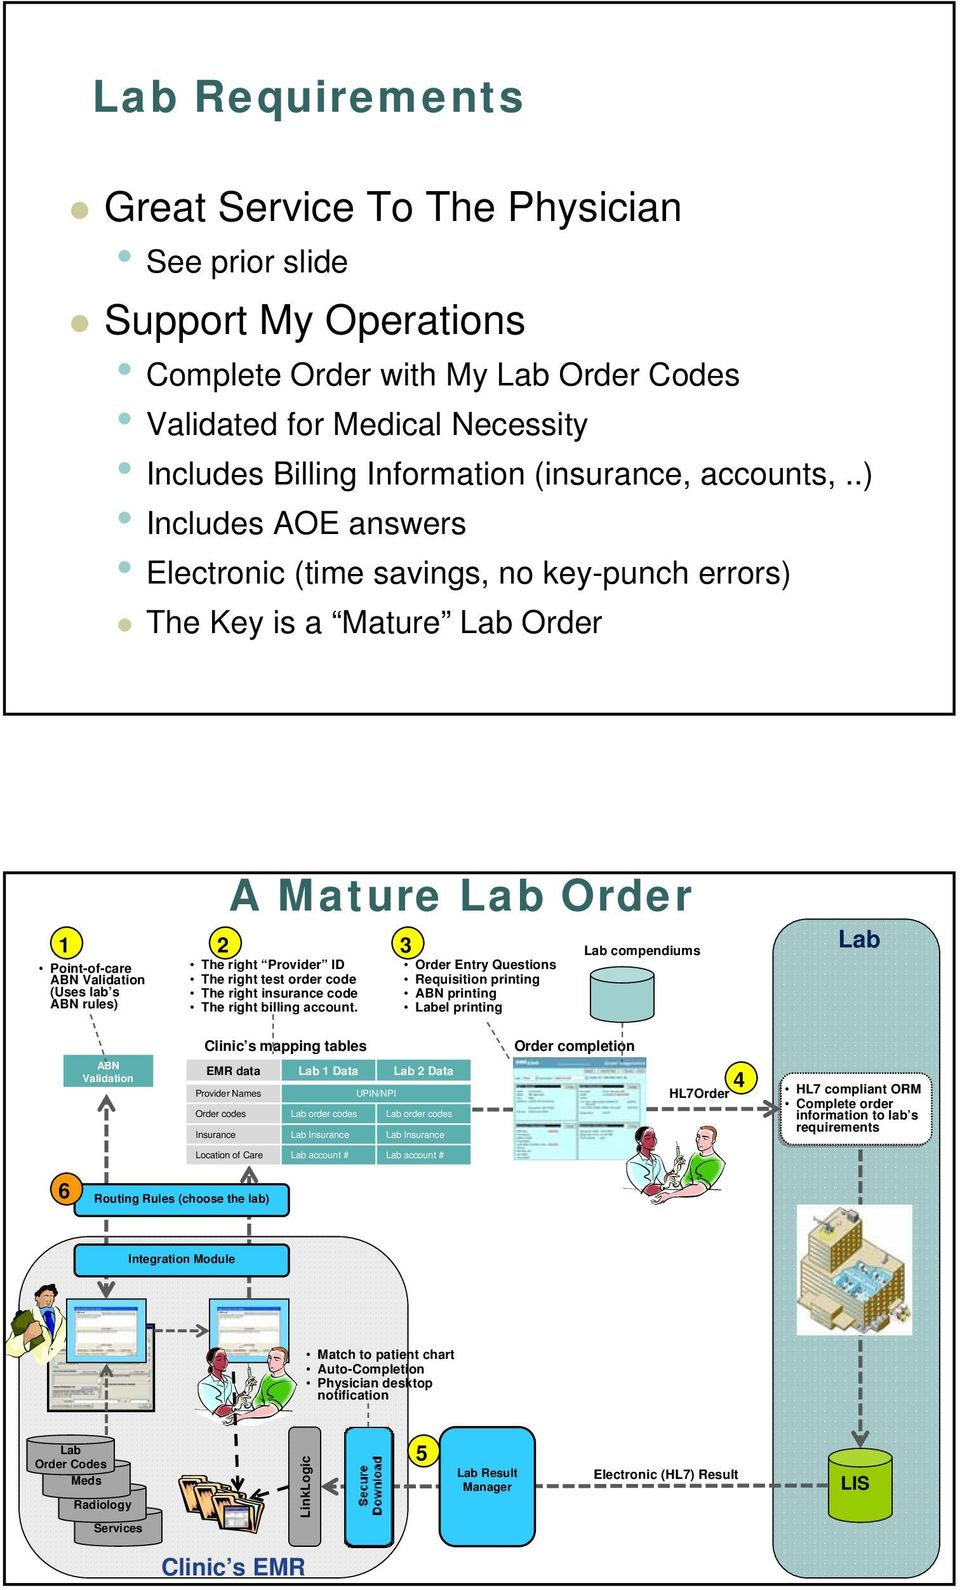 .) Includes AOE answers Electronic (time savings, no key-punch errors) The Key is a Mature Lab Order 1 Point-of-care ABN Validation (Uses lab s ABN rules) 2 A Mature Lab Order The right Provider ID